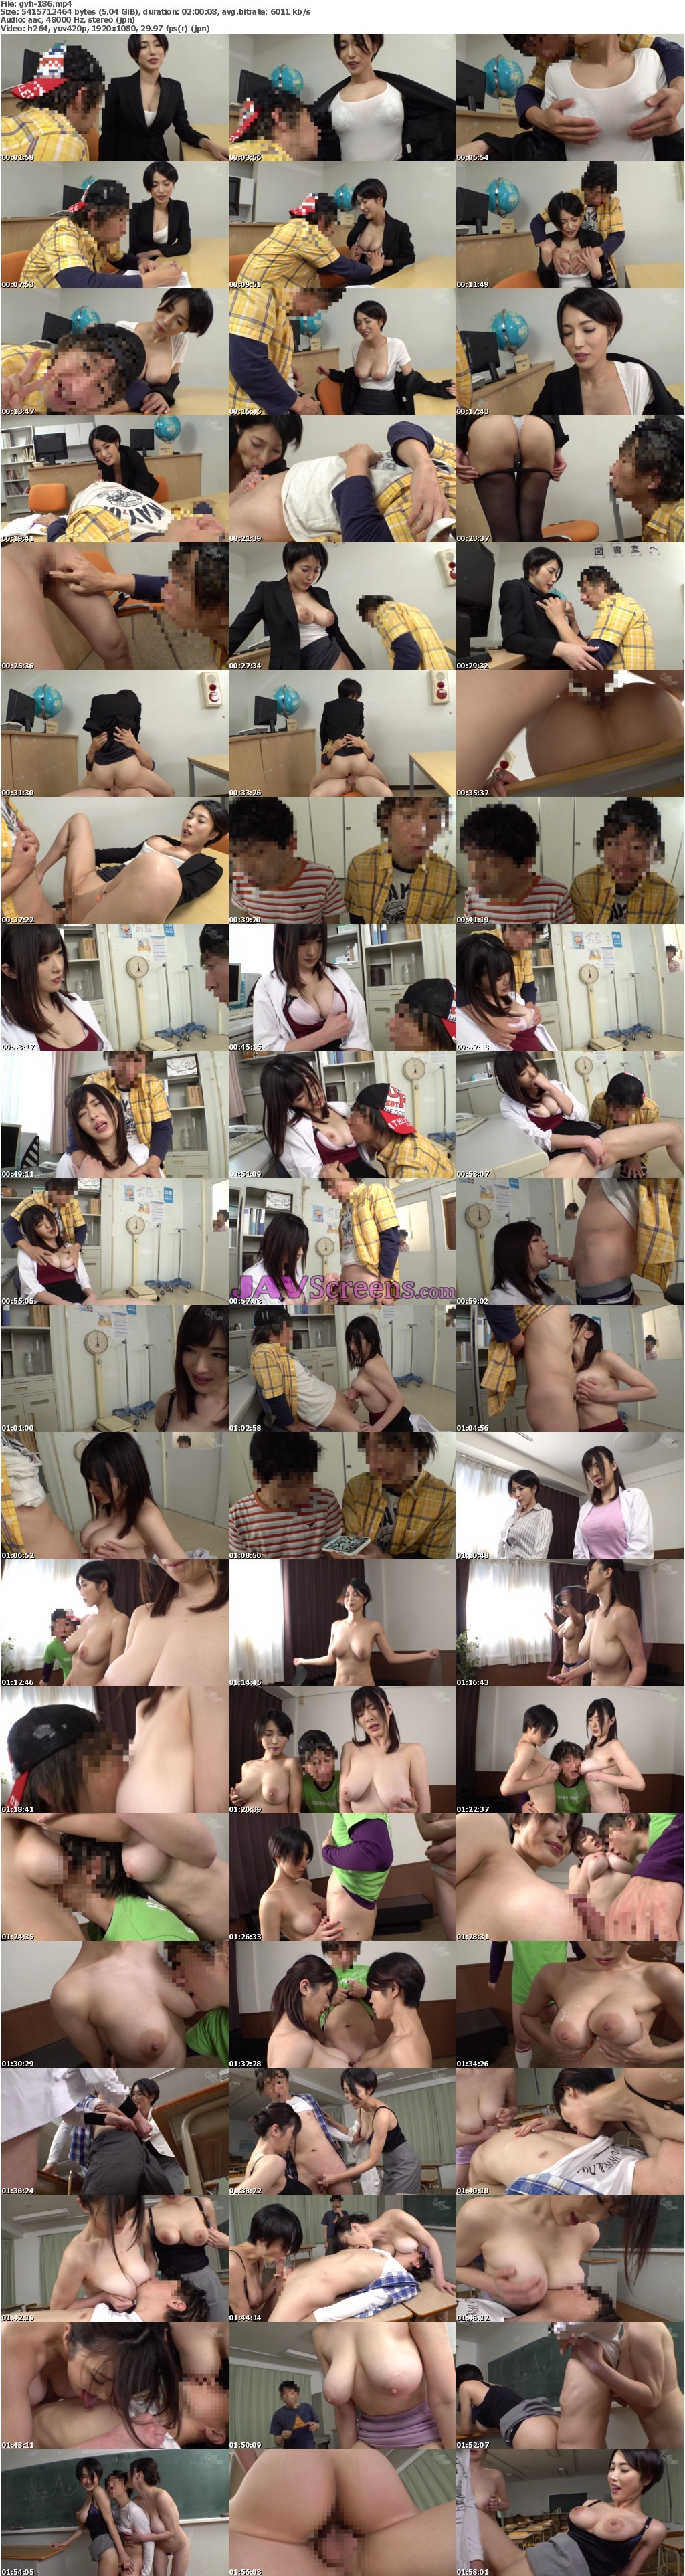 GVH-186.jpg - JAV Screenshot